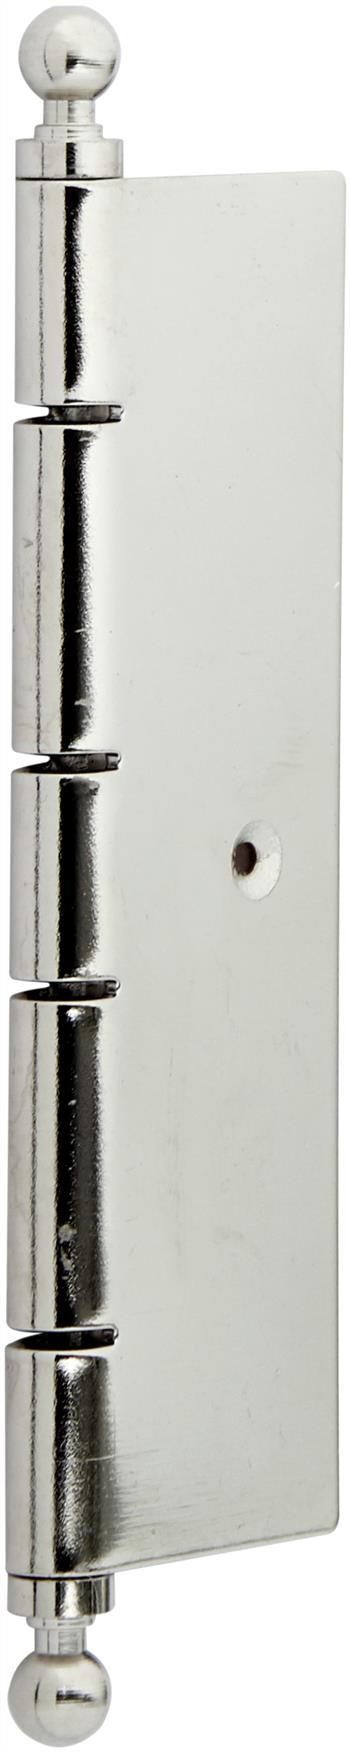 Traditional decorative butt hinge in polished chrome